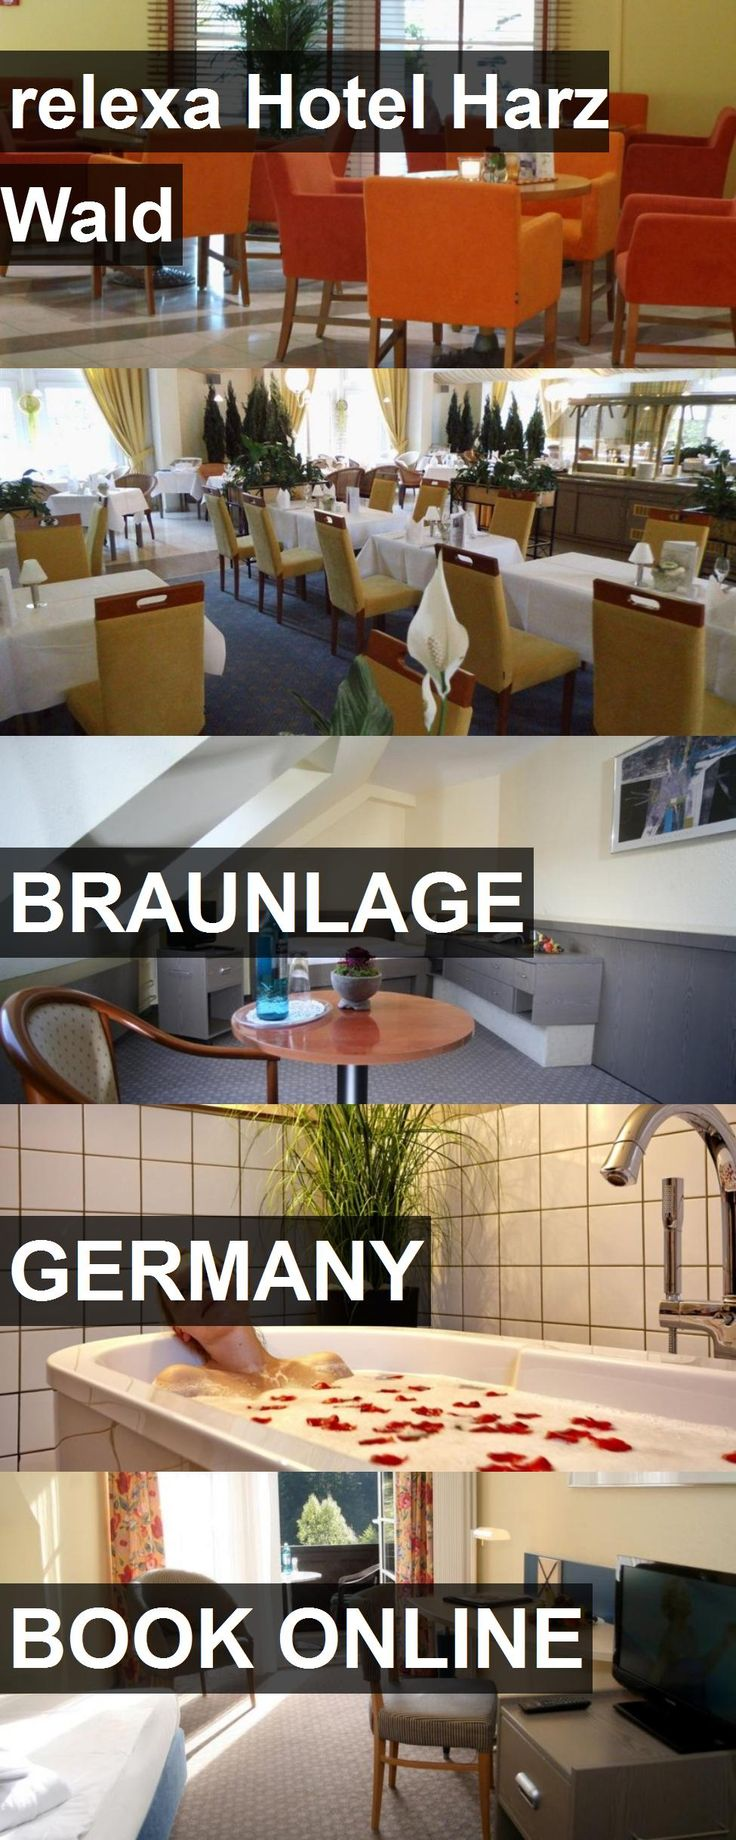 relexa Hotel Harz Wald in Braunlage, Germany. For more information, photos, reviews and best prices please follow the link. #Germany #Braunlage #travel #vacation #hotel